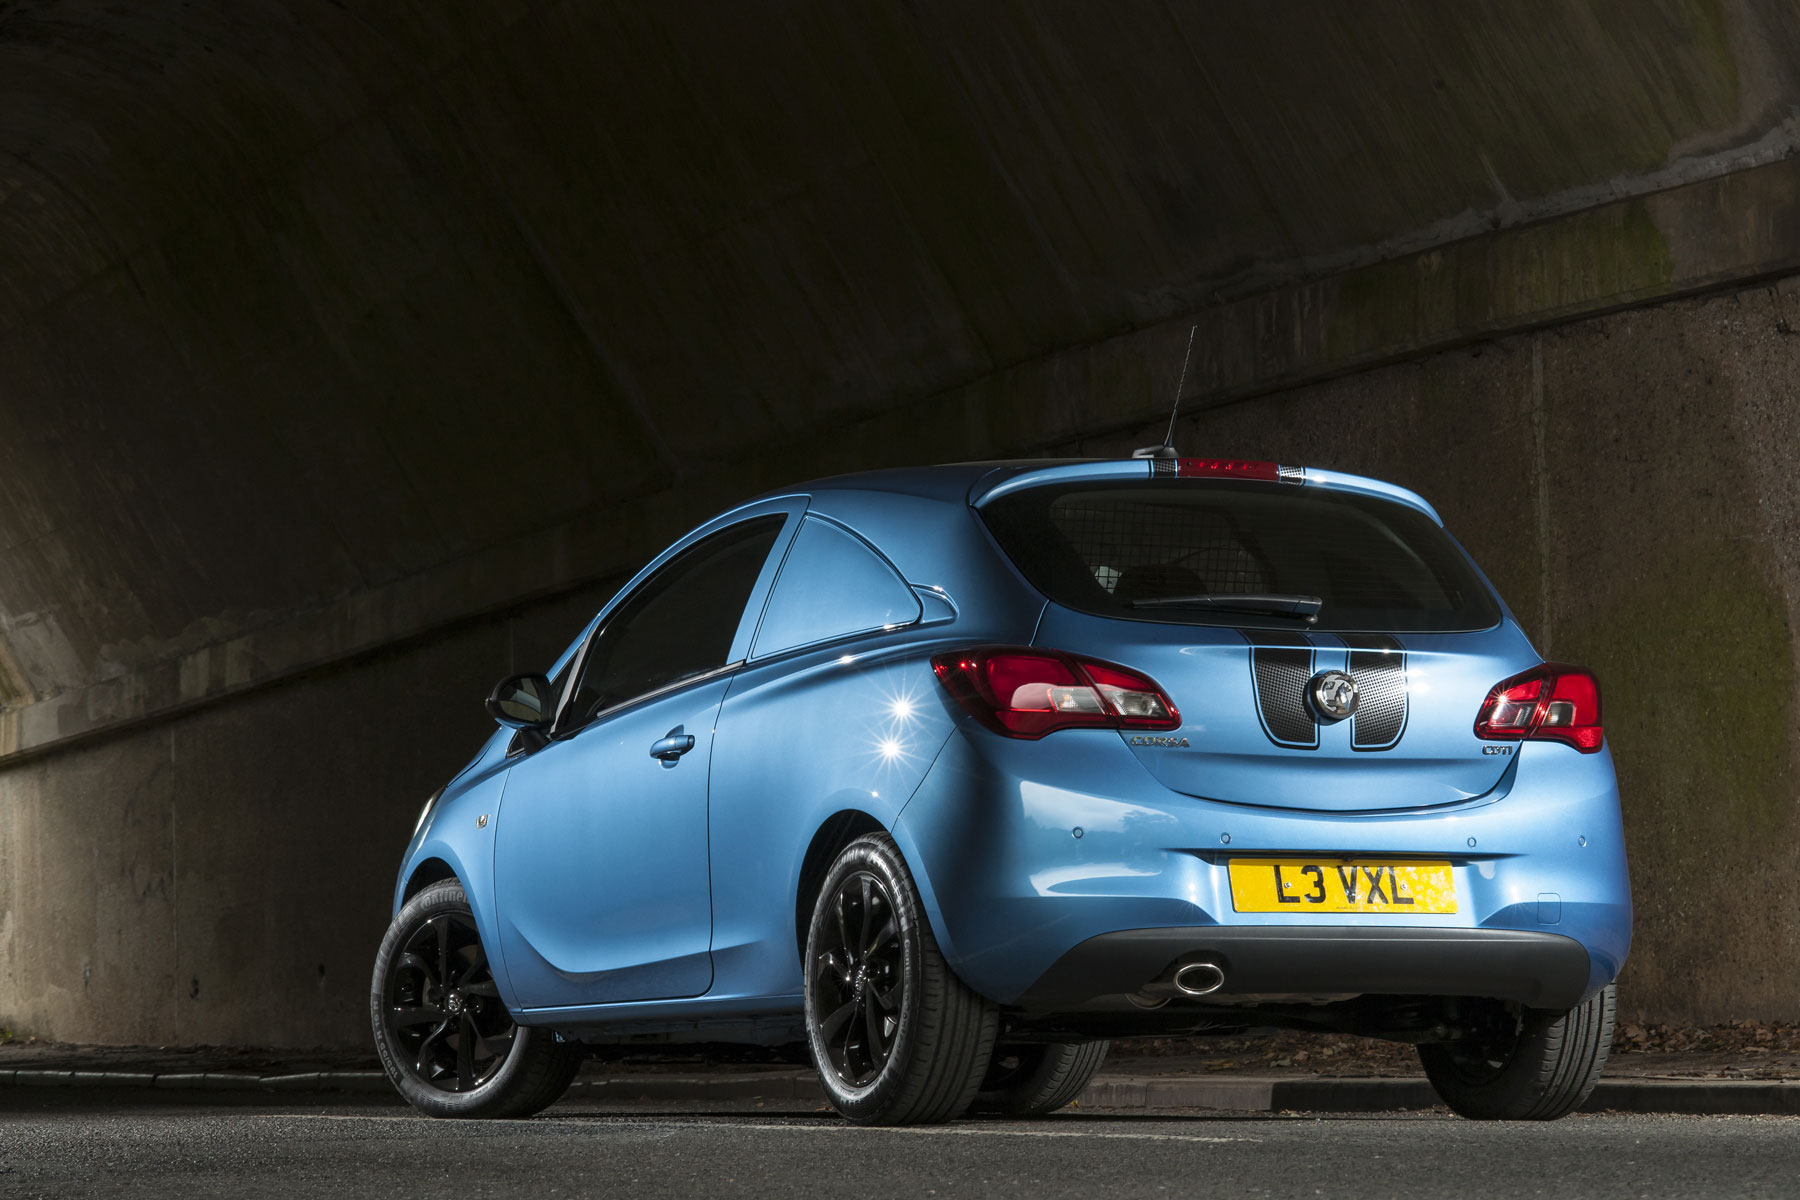 Vauxhall Corsavan Limited Edition Nav review - rear and stripes